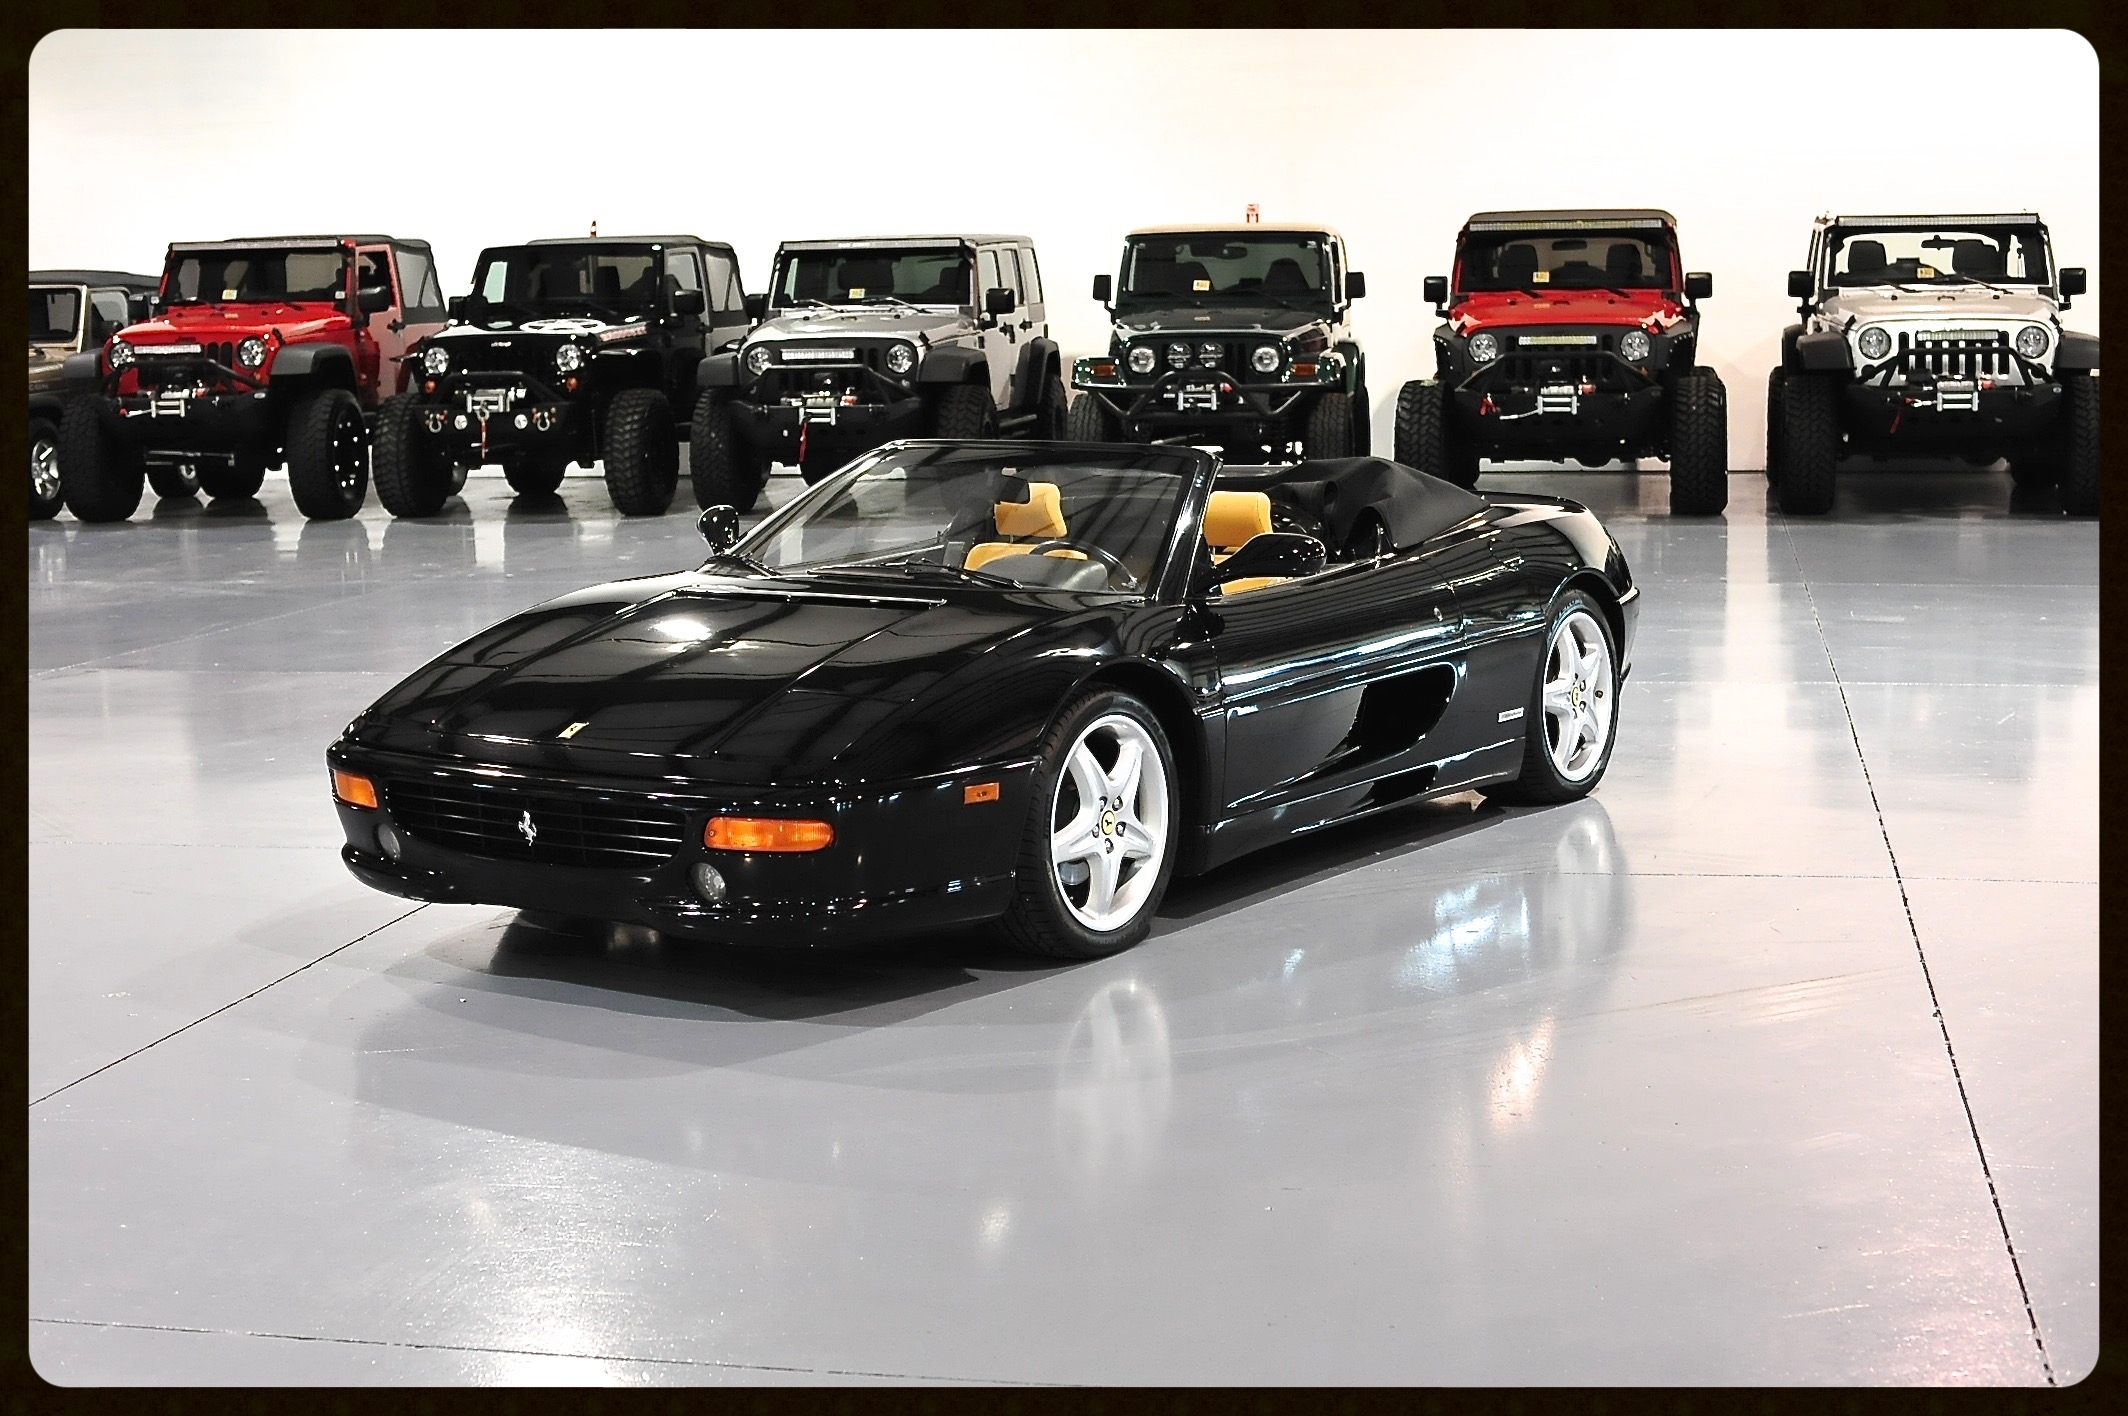 Ferrari 355 Spider with F1 Transmission...Full Service History...Only 17K Miles...Brand New P Zero Tires...Recent Full Paint Correction Service. Click to View